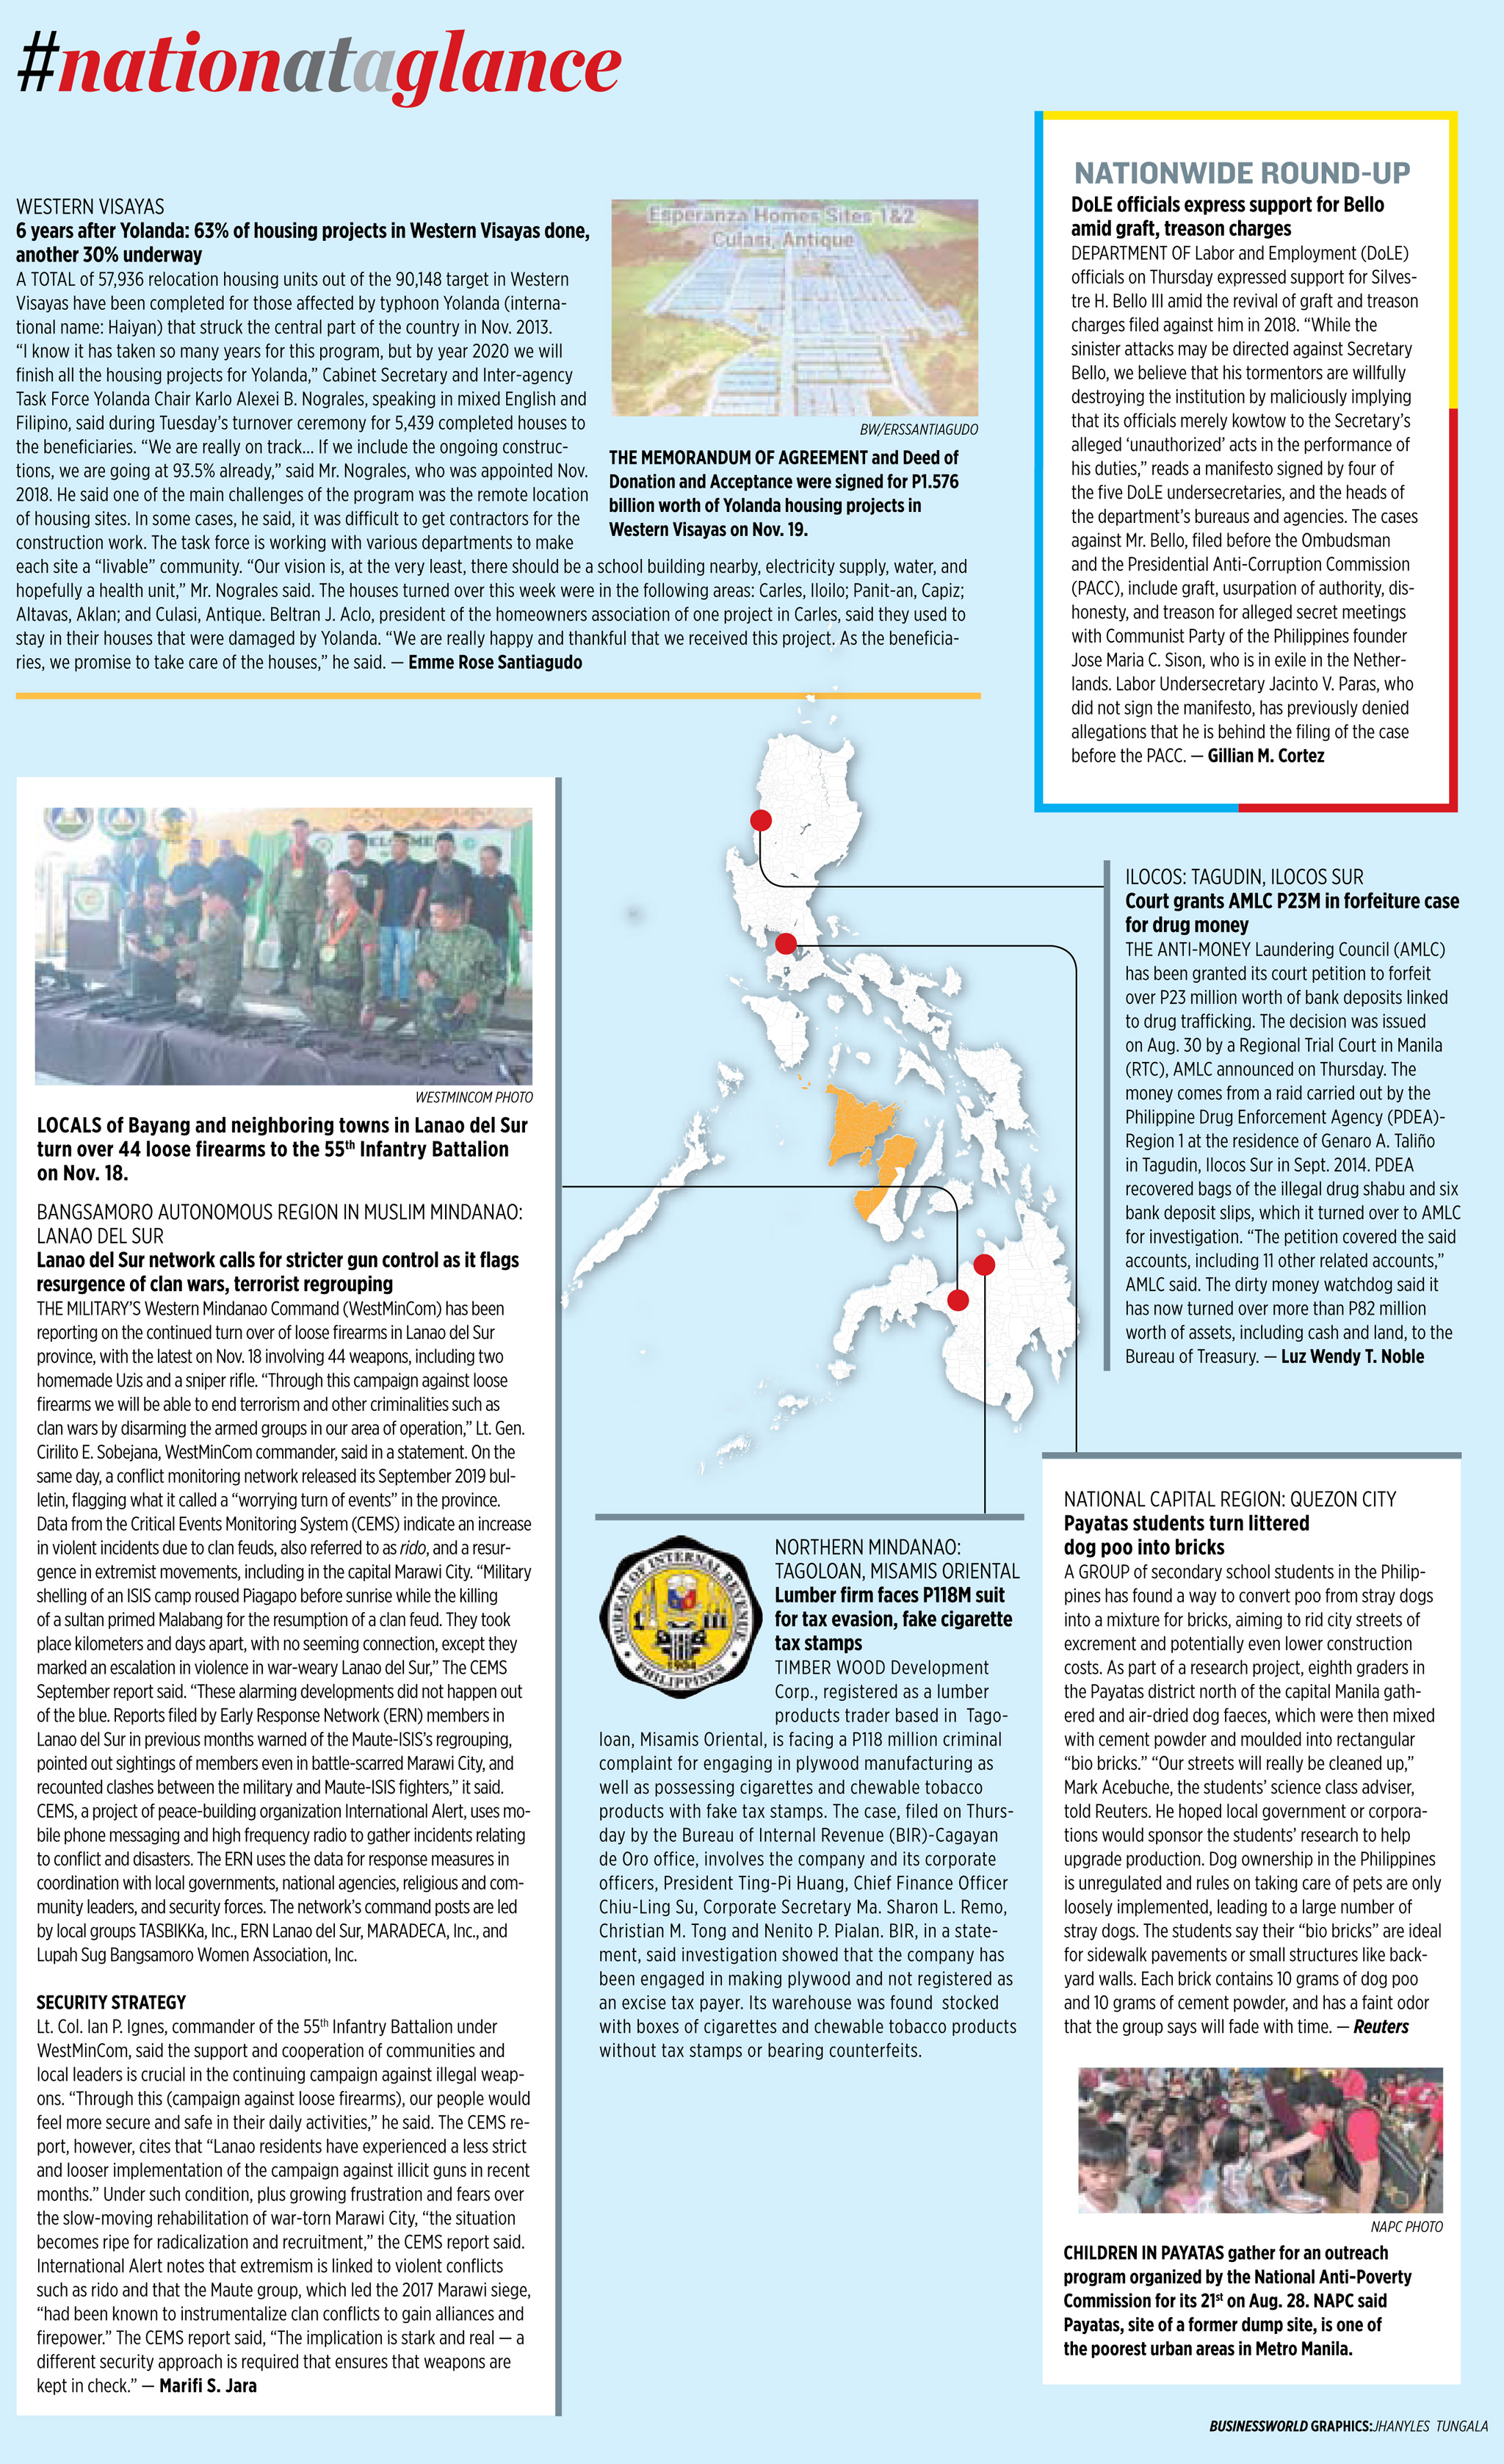 Nation at a Glance — (11/22/19)